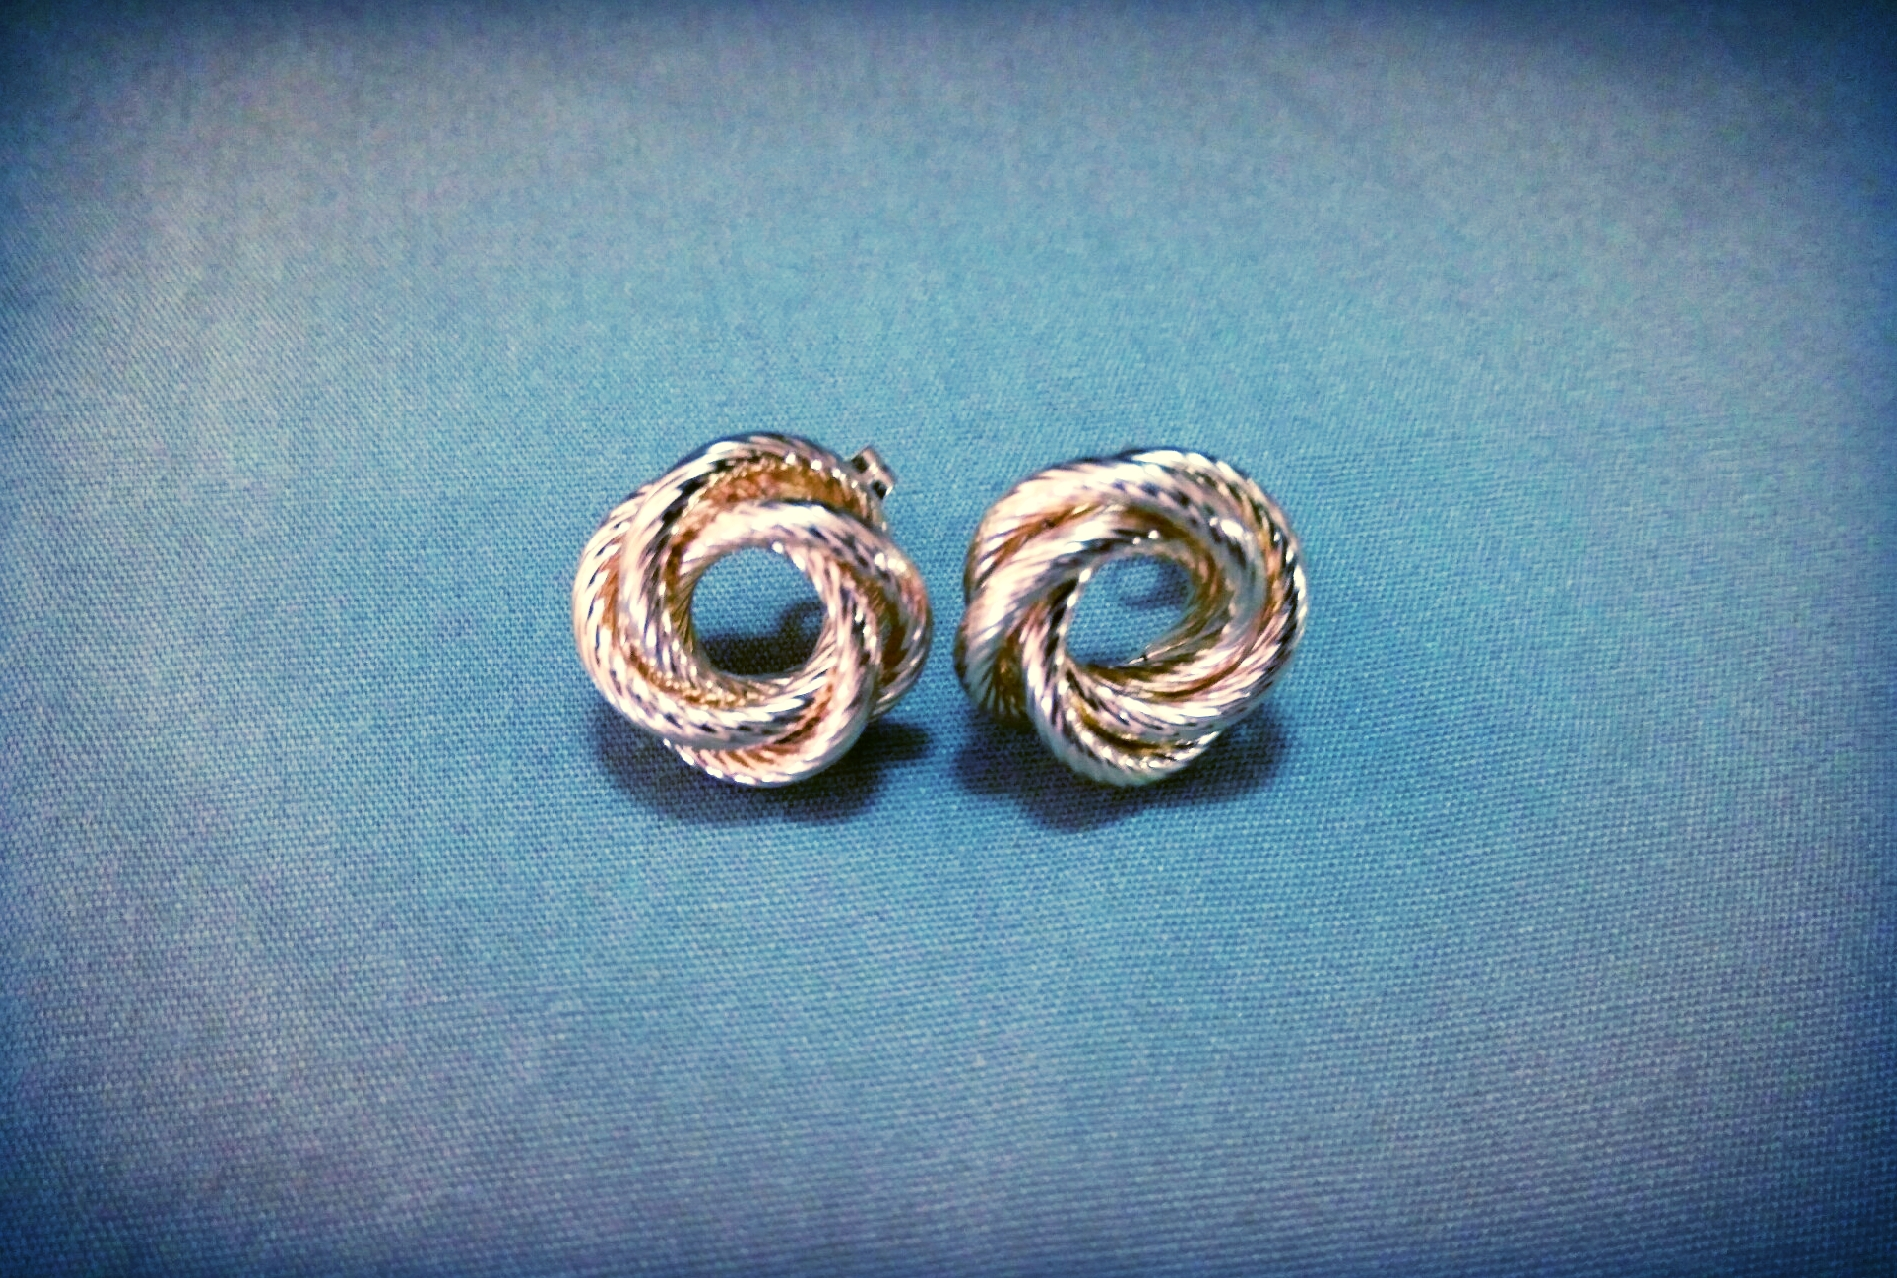 These Knot earrings in 14k gold are a jewelry box basic.